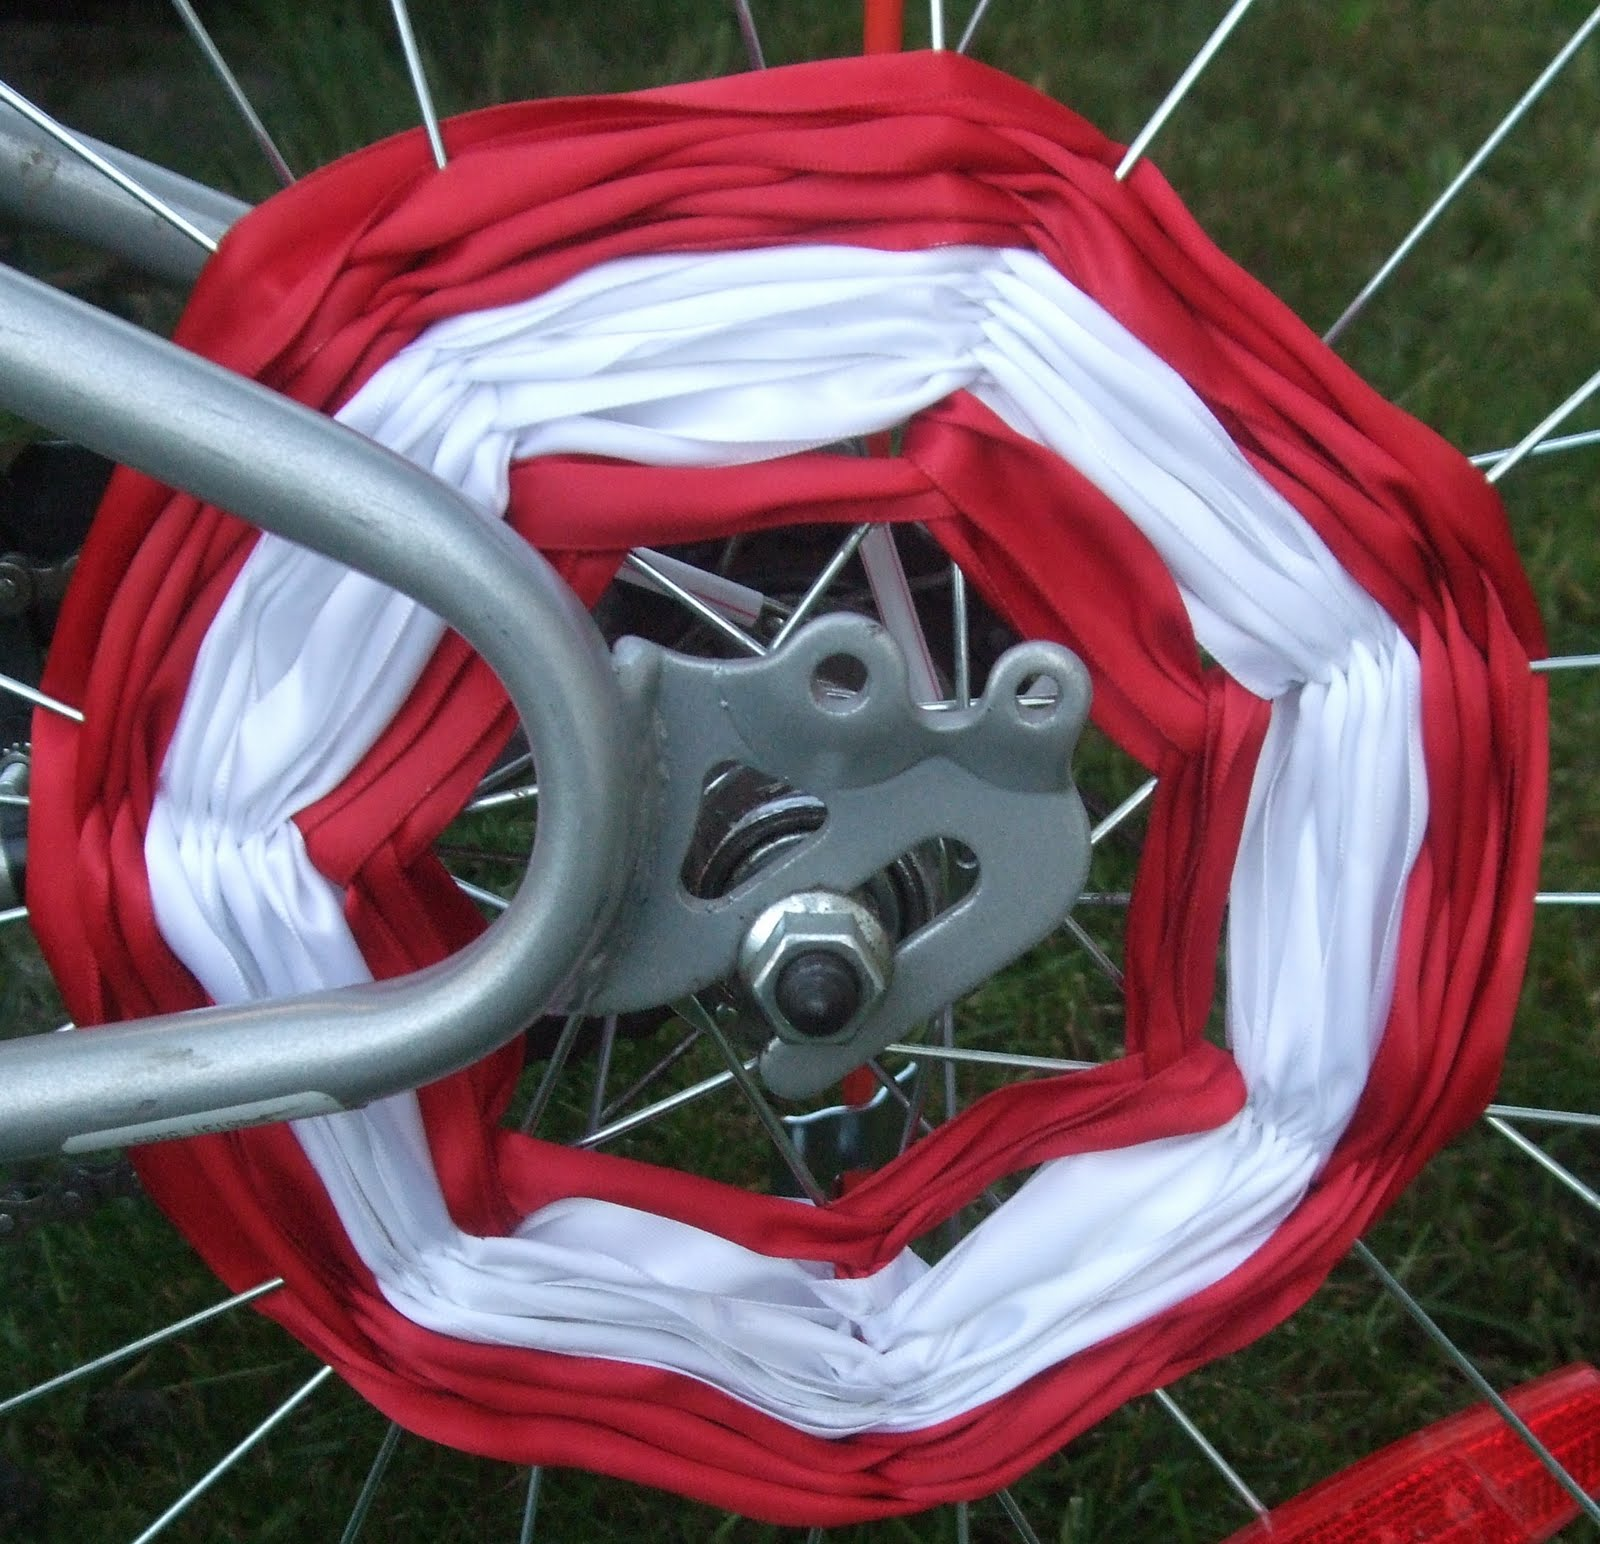 Loop Frame Love  Canada Day Bike Decorations  LGRAB Summer Games post 5  Basically they re a slightly more sophisticated  more permanent version of  the crepe paper streamer spoke decorating you see on sites for